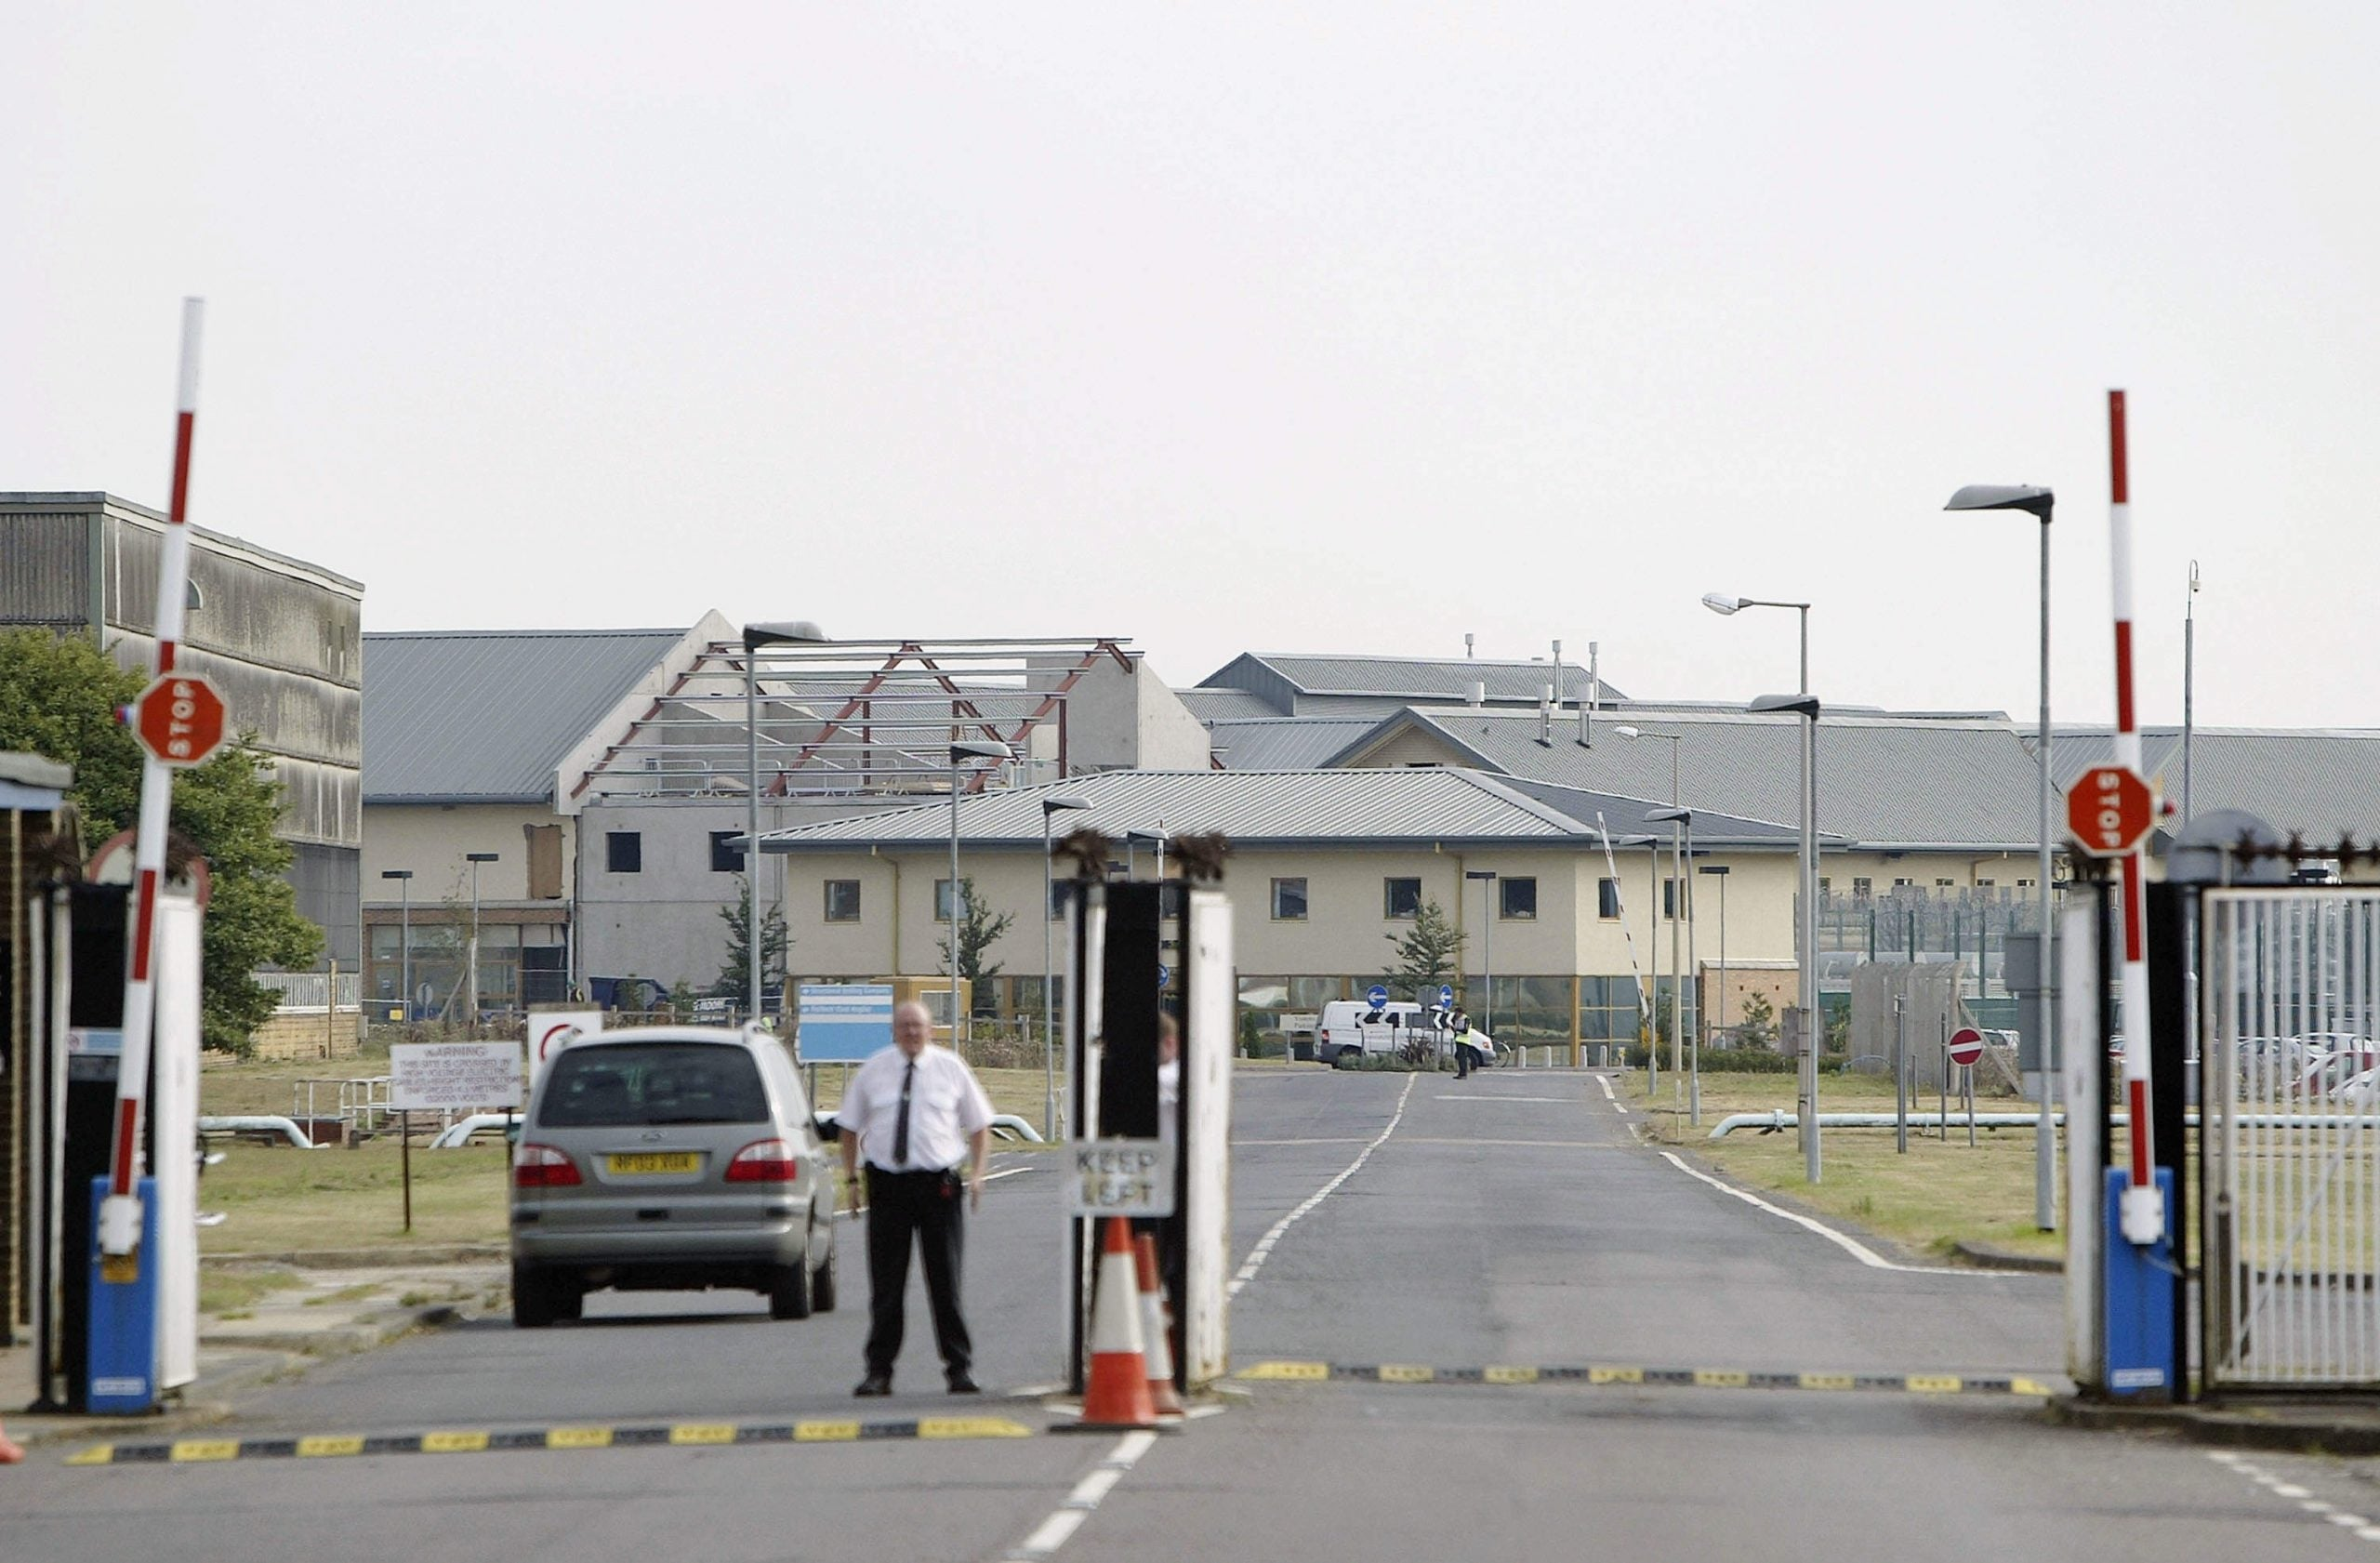 Why are pregnant women being detained in Yarl's Wood?